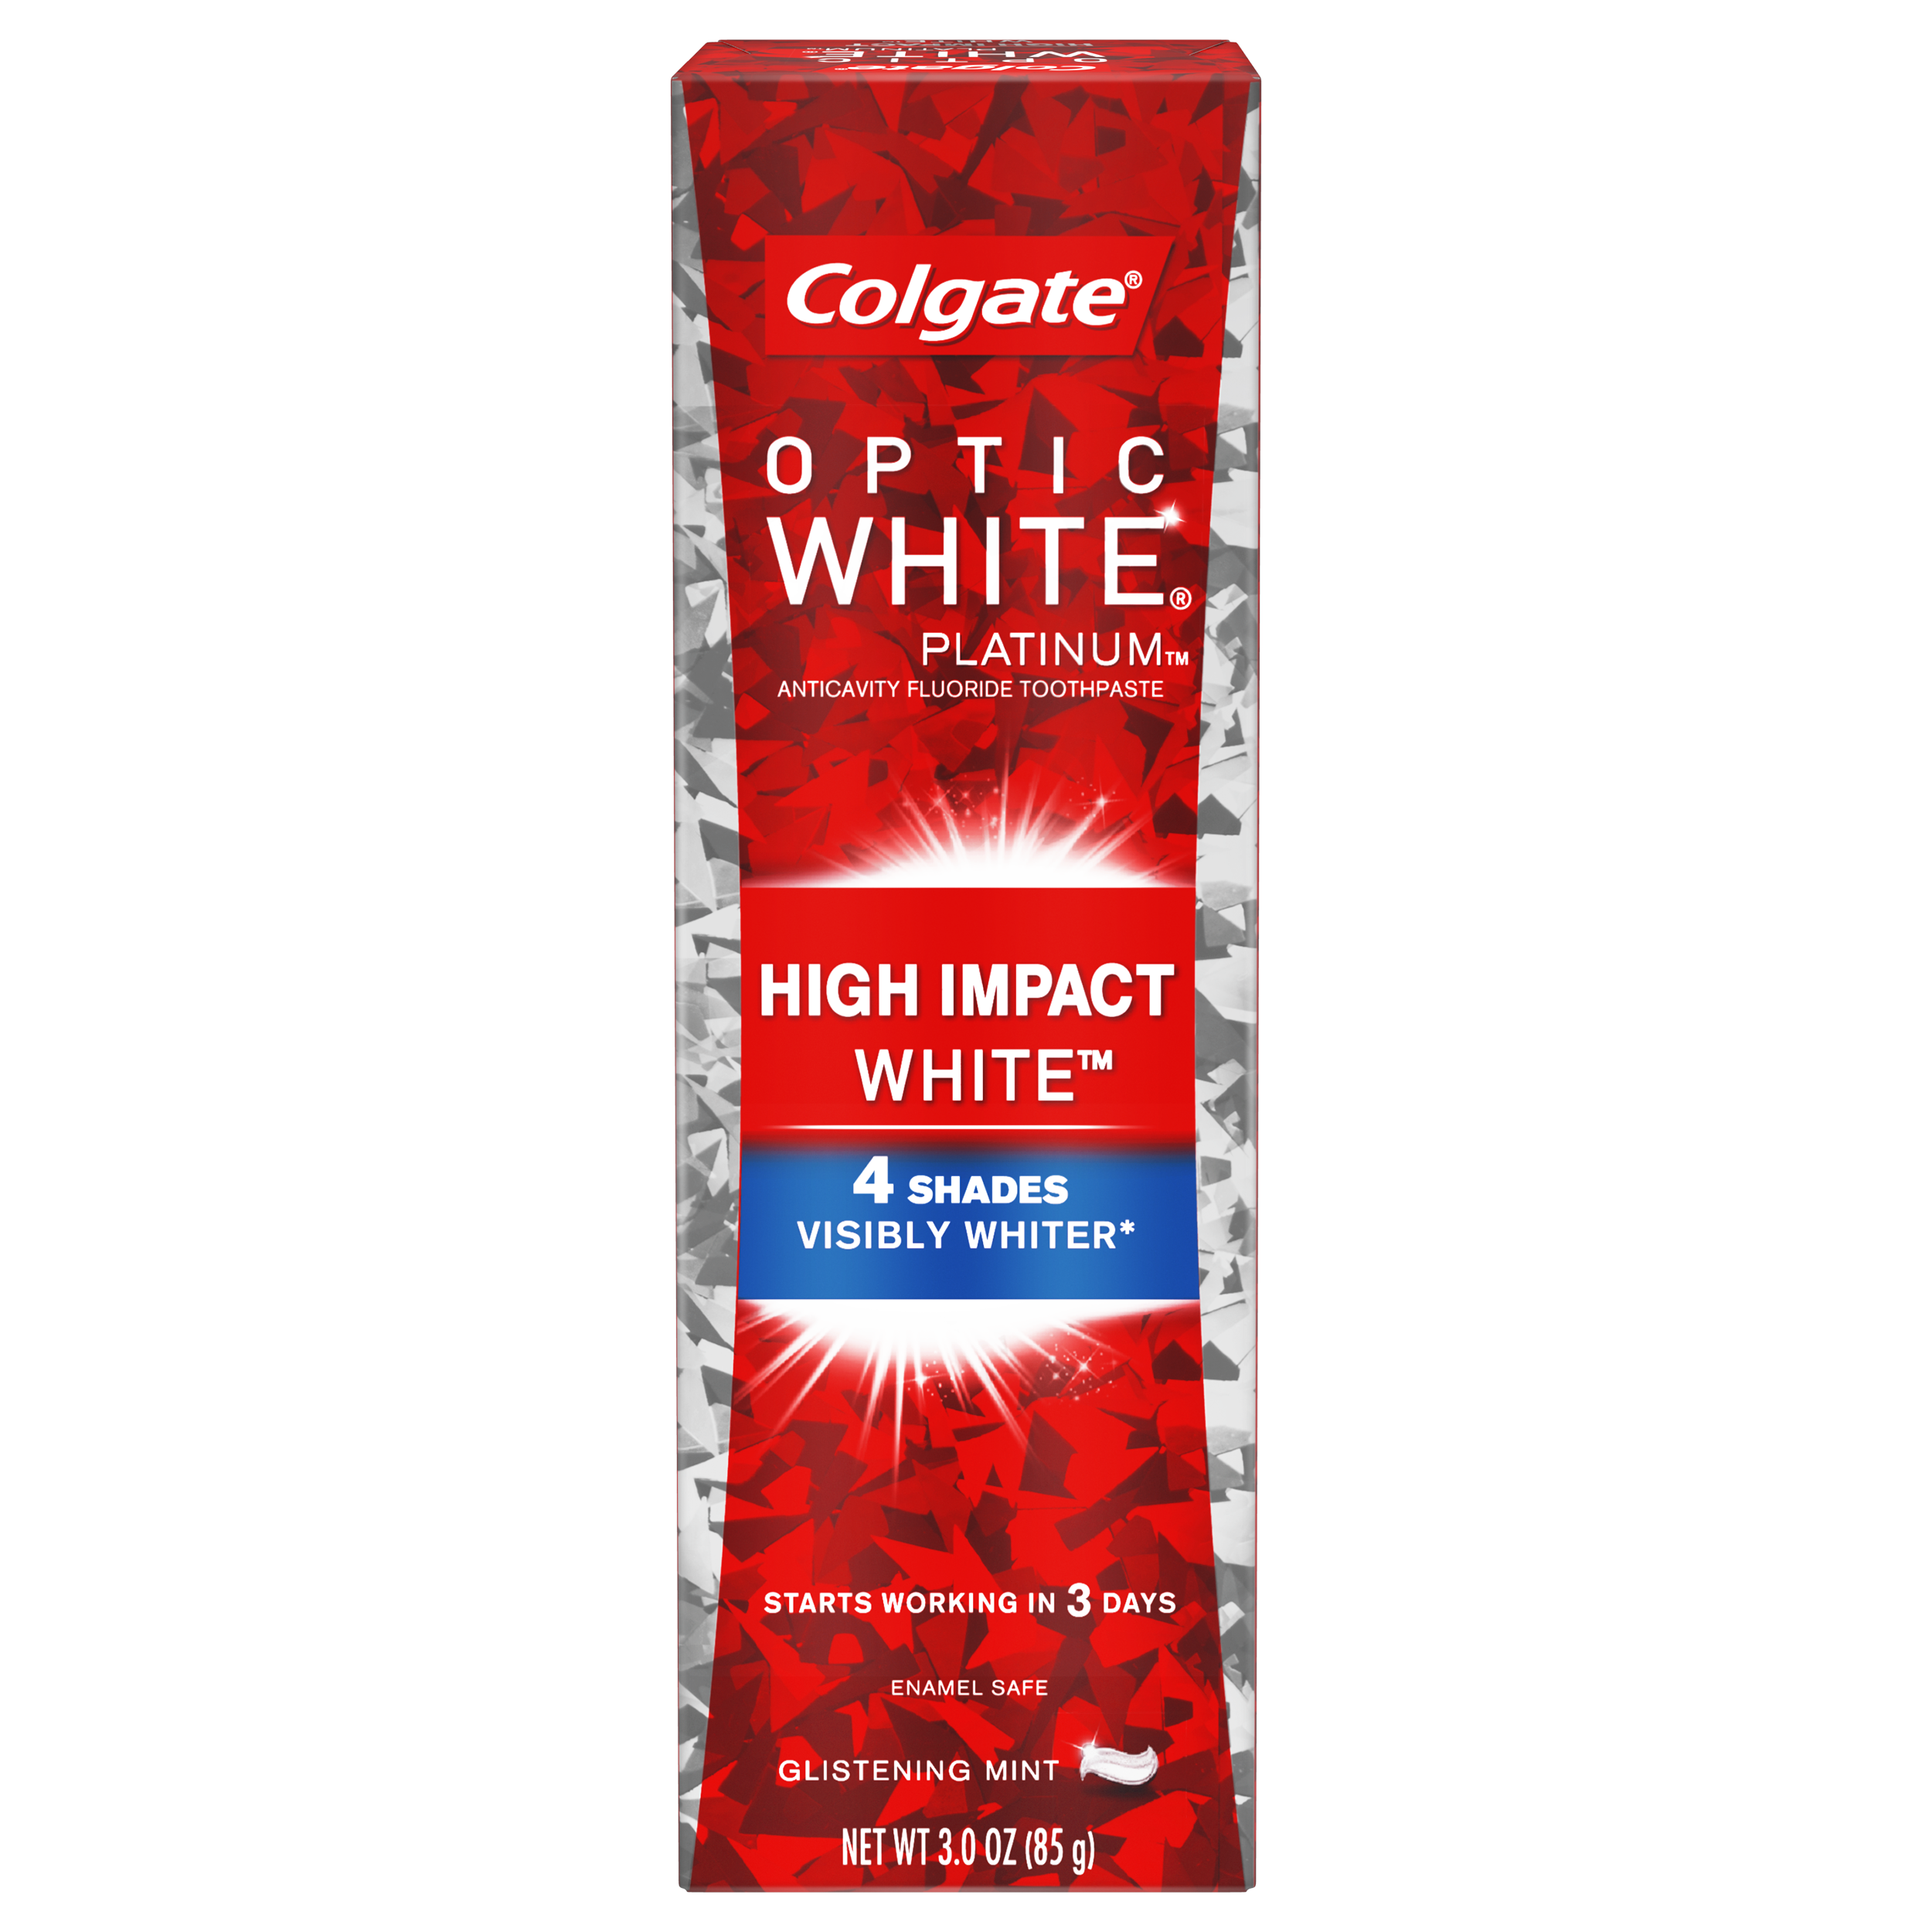 Colgate Optic White High Impact White Whitening Toothpaste - 3 ounce